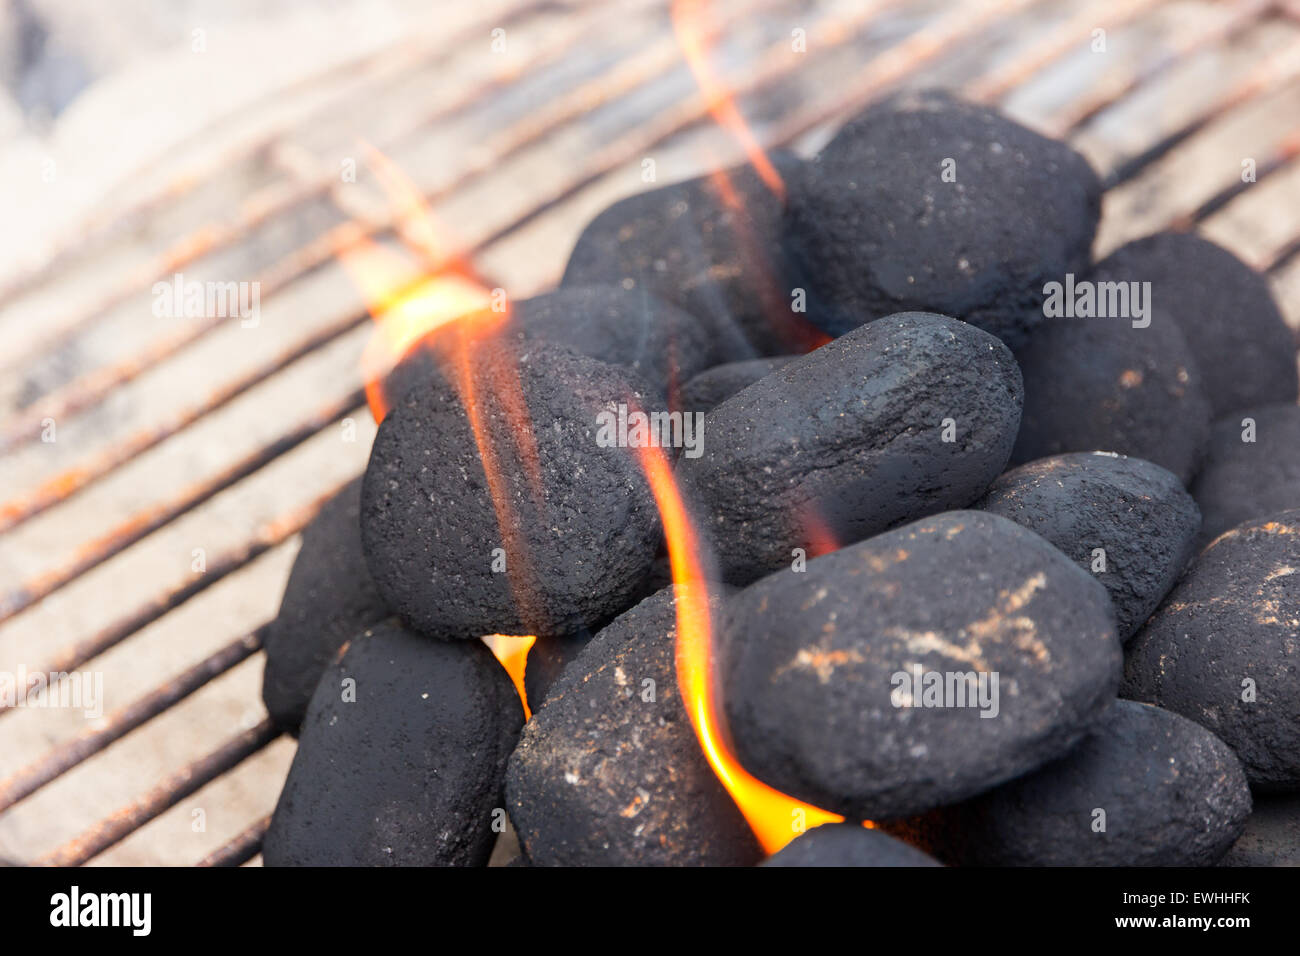 Charcoal briquettes on fire in a BBQ - Stock Image